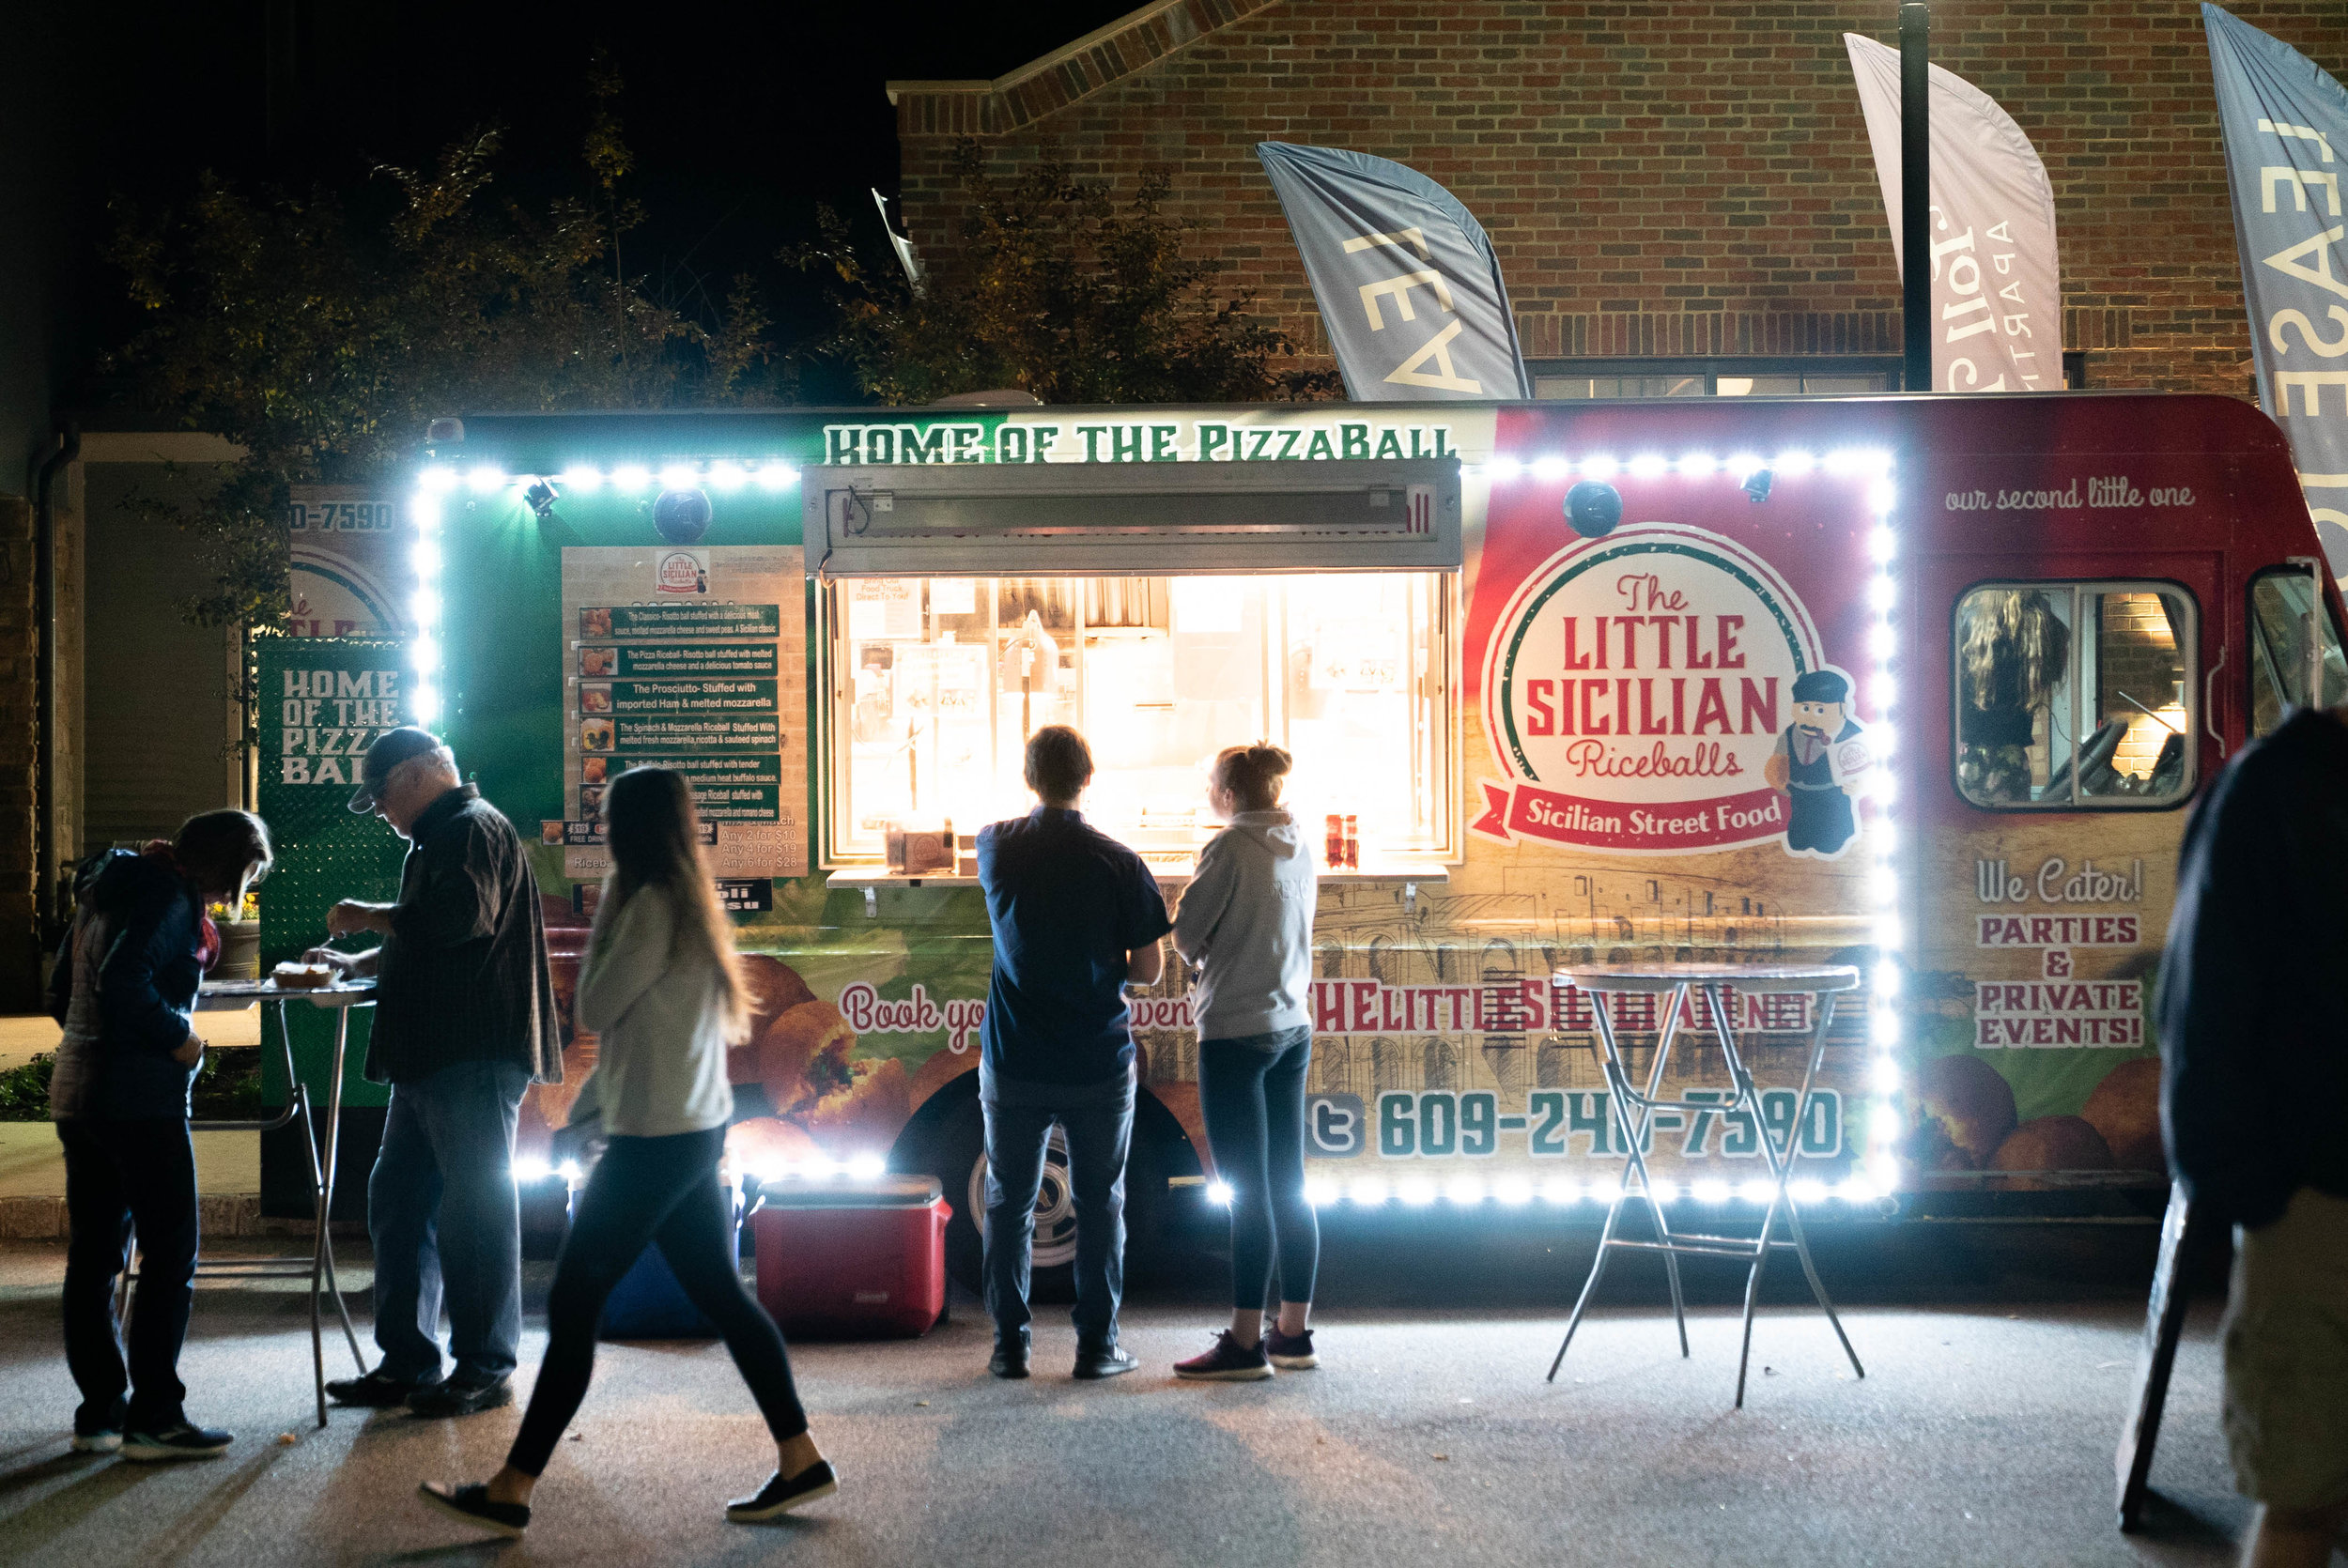 Catch Food Trucks and great vendors, with live music, at Night Market on Friday, November 1st!